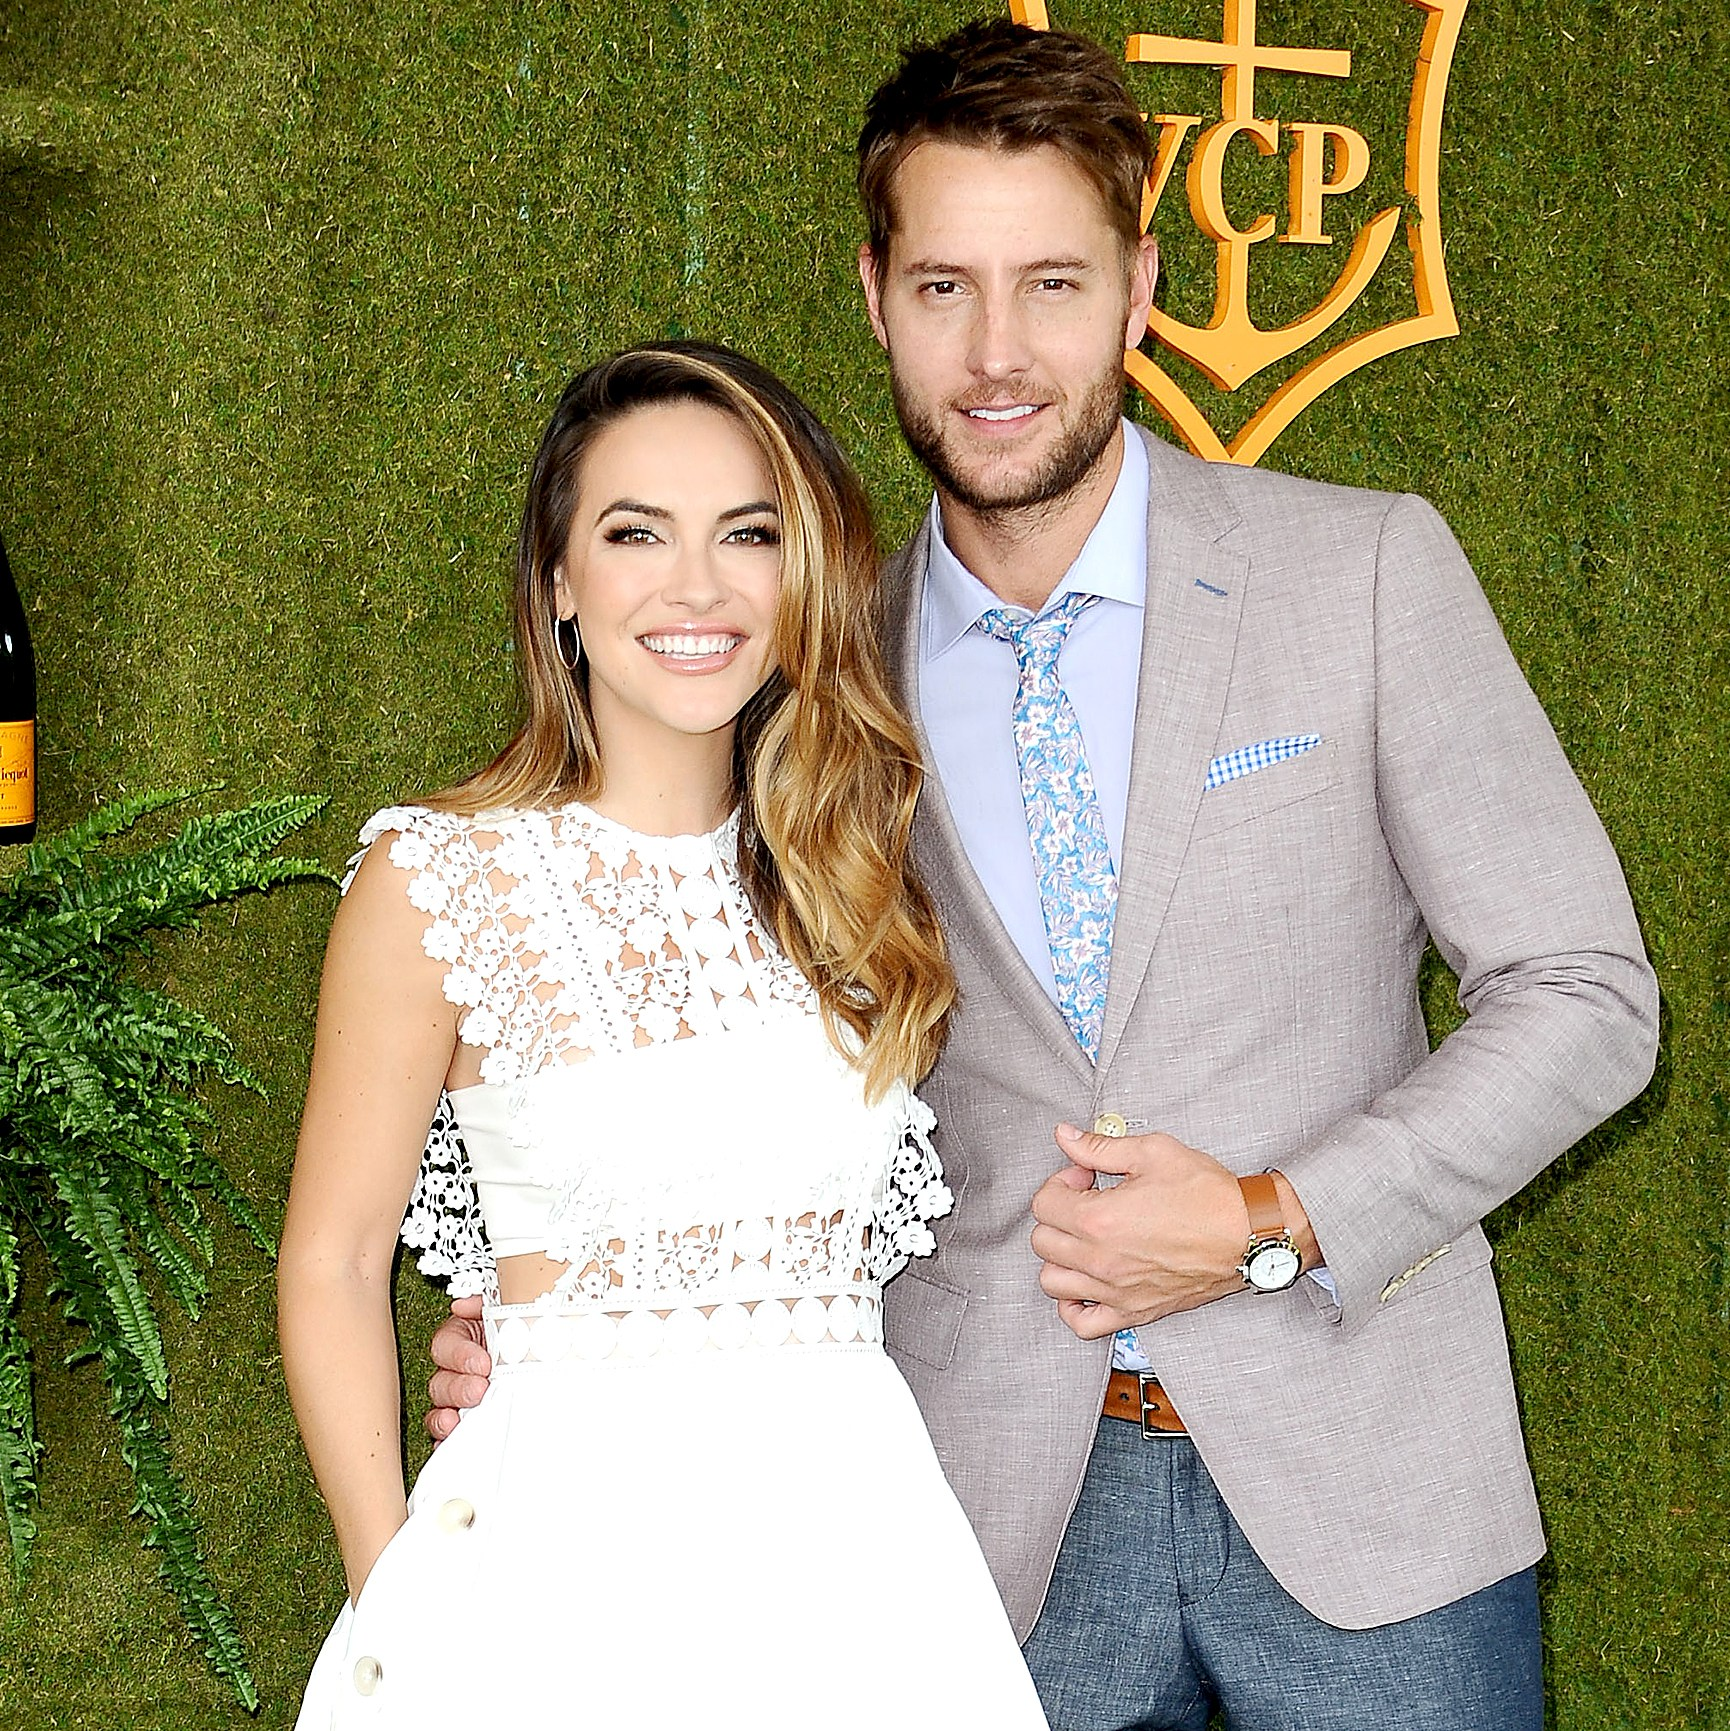 Chrishell Stause and Justin Hartley attend the 8th annual Veuve Clicquot Polo Classic at Will Rogers State Historic Park on October 14, 2017 in Pacific Palisades, California.